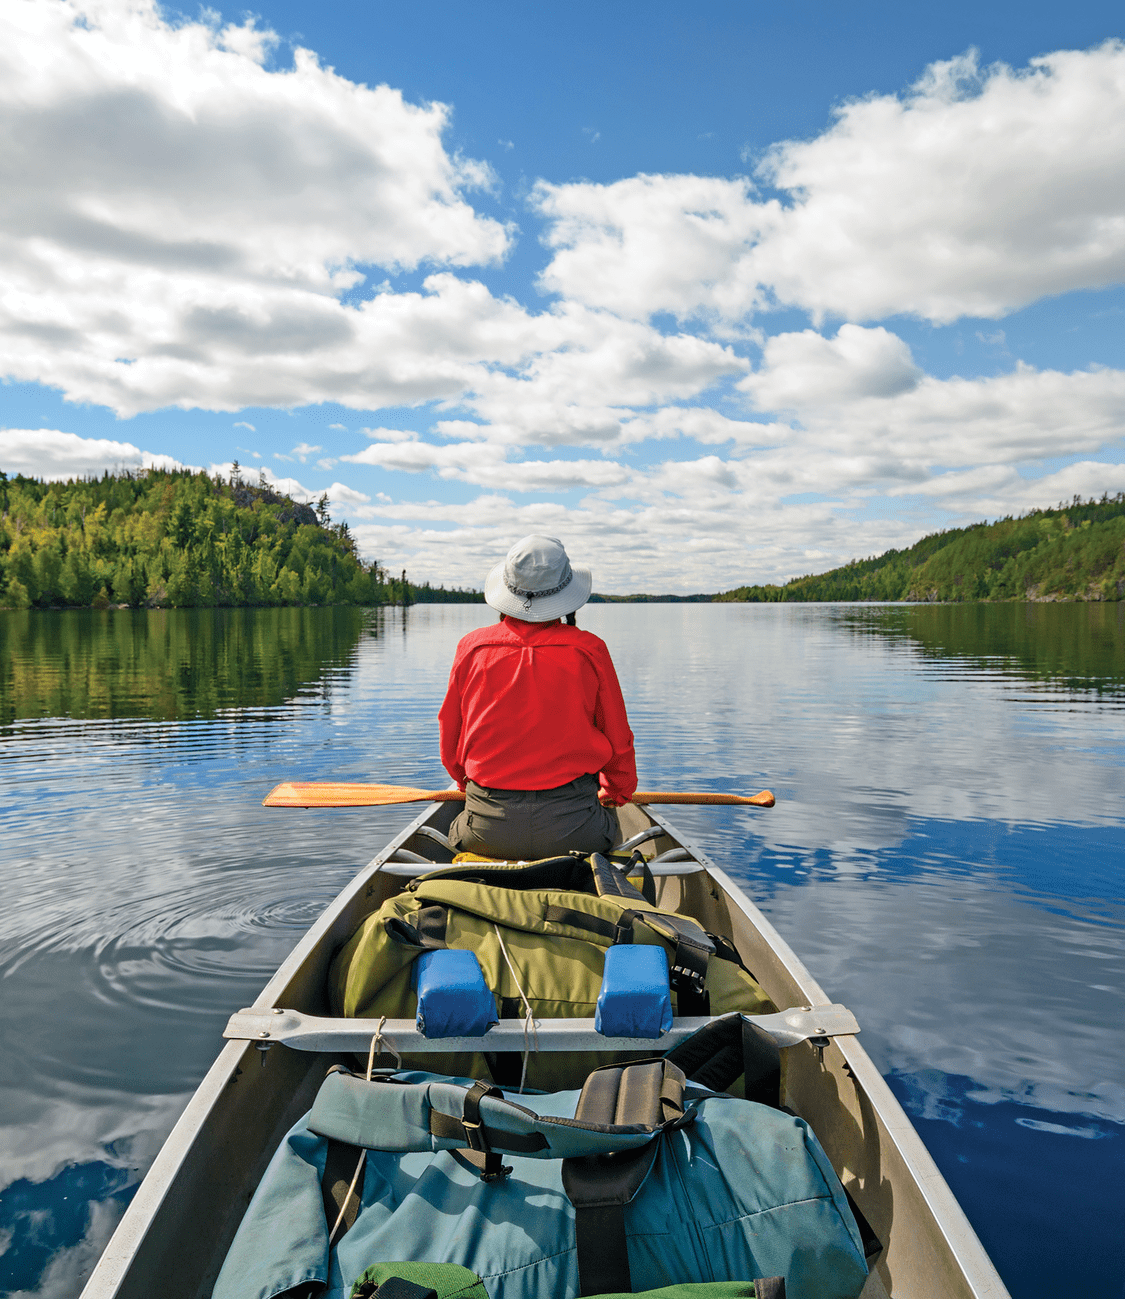 Get in touch with nature on a canoe